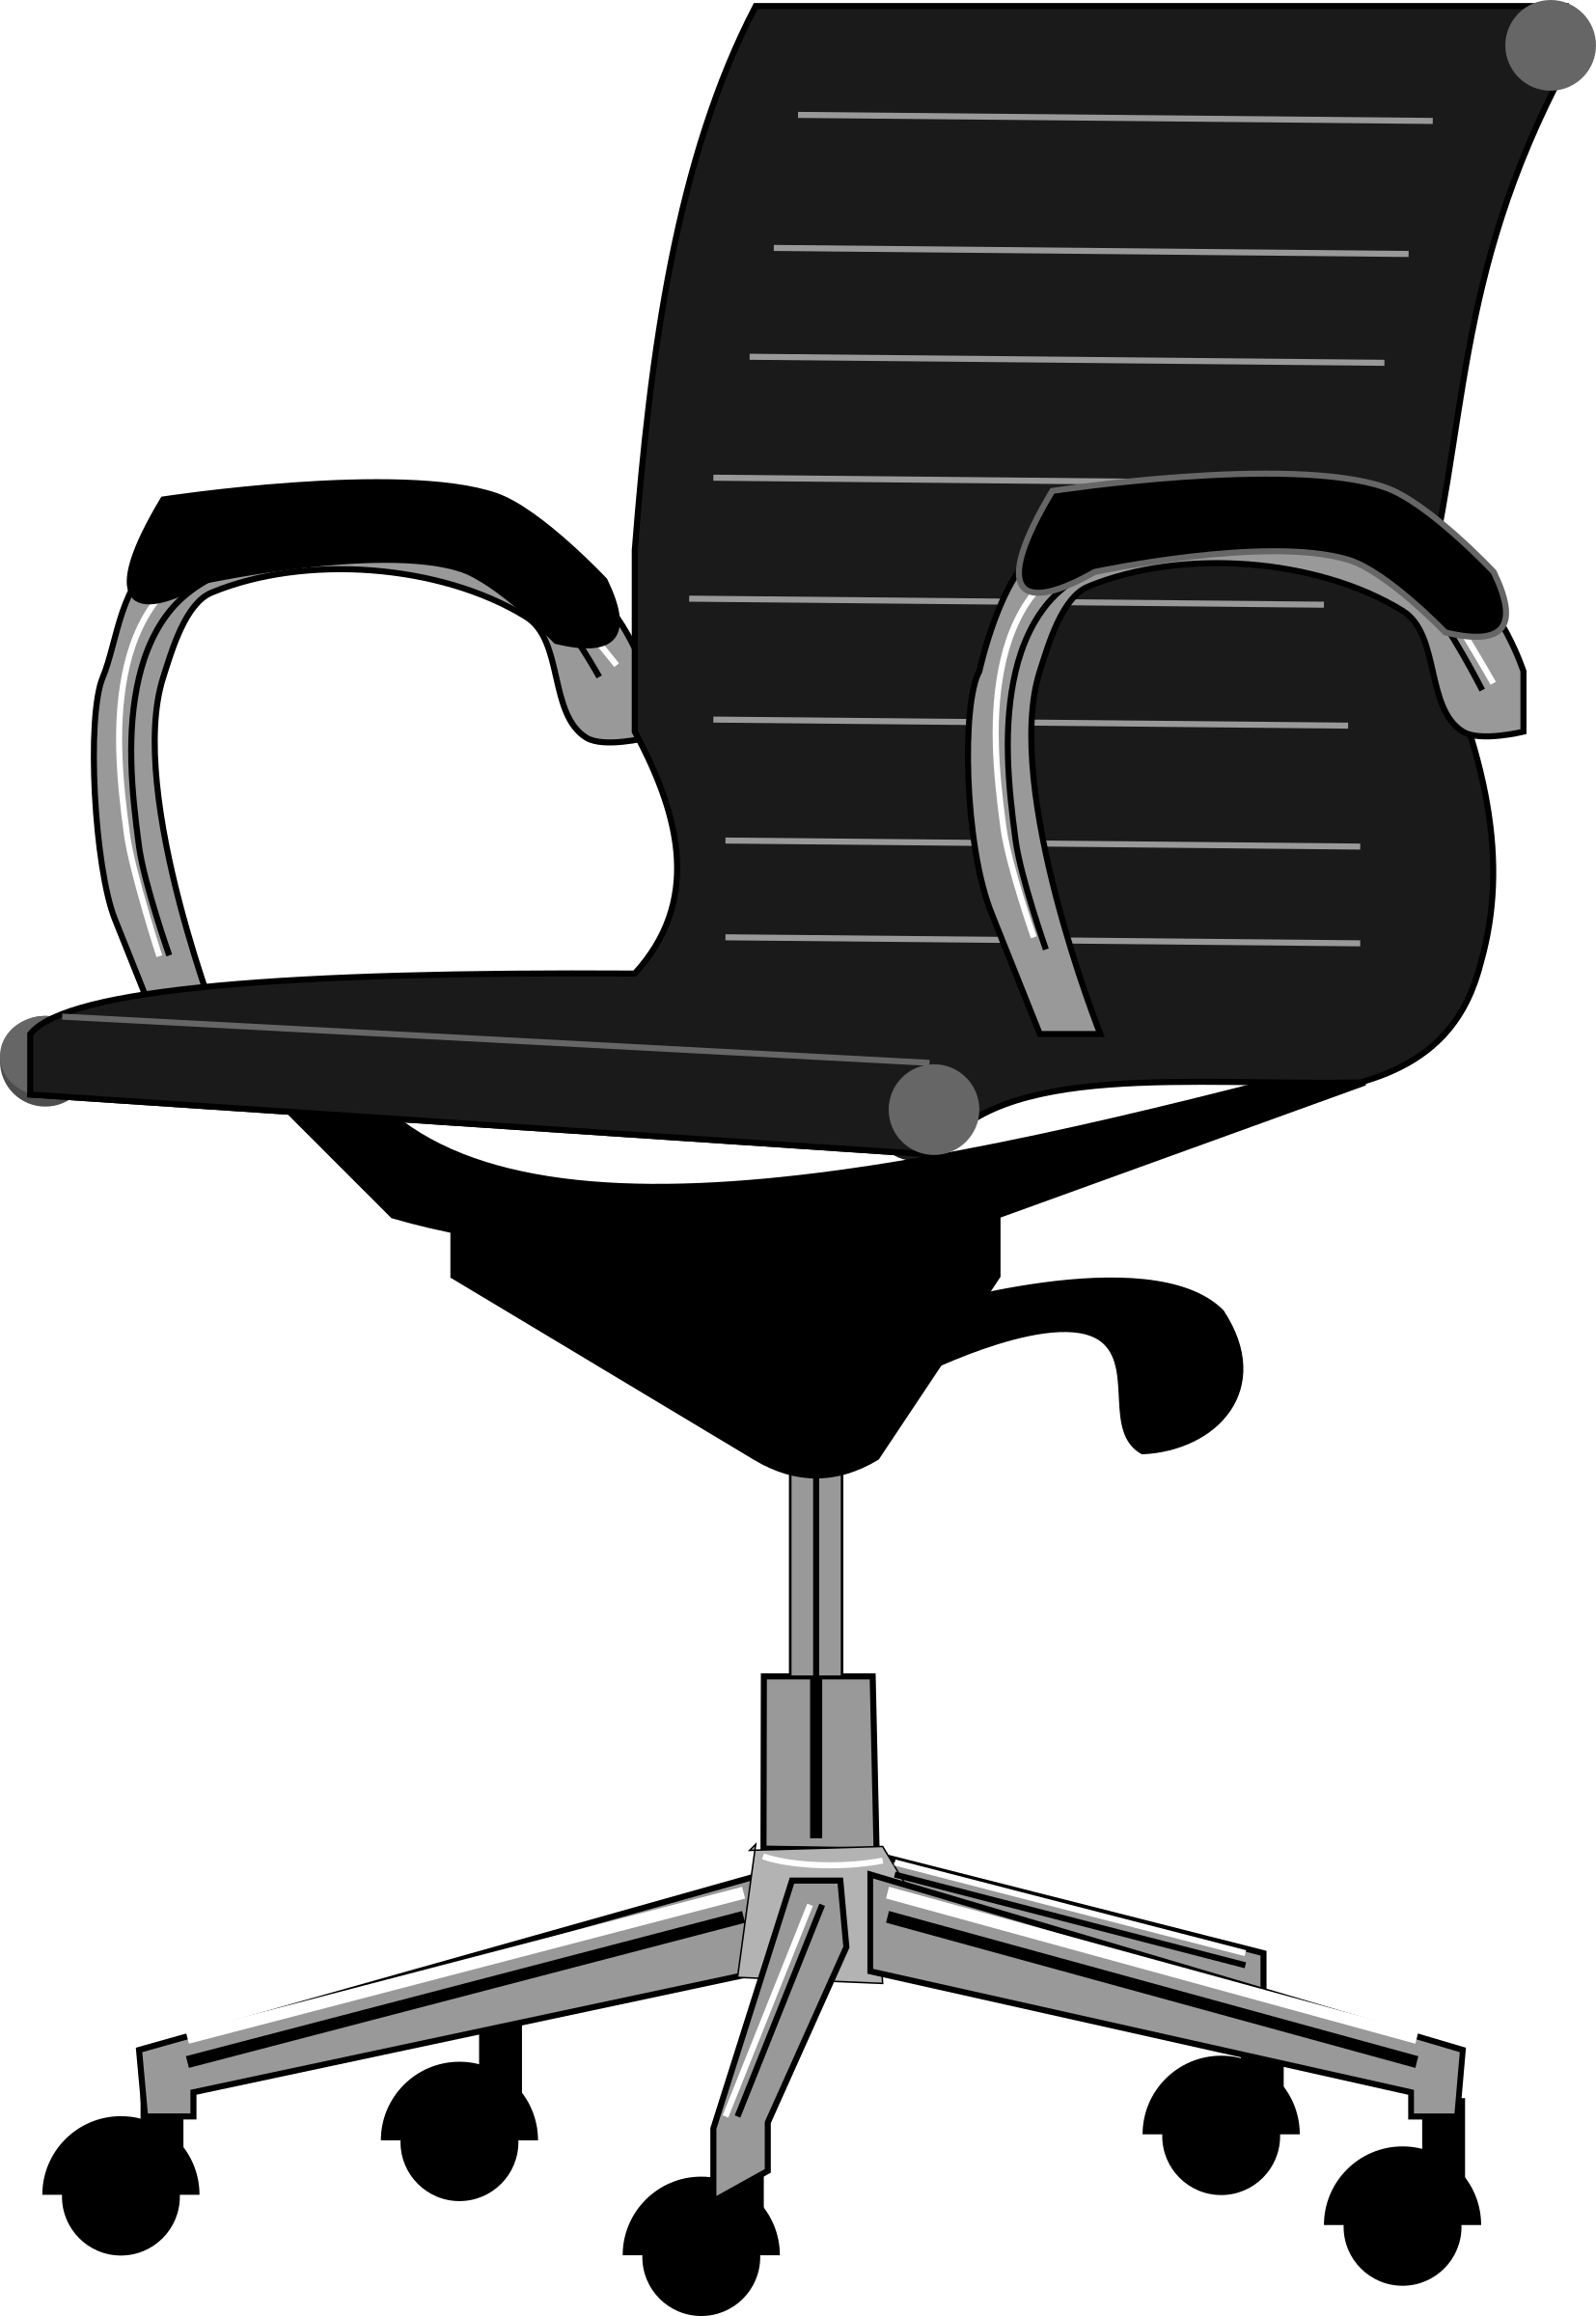 Furniture clipart office furniture.  collection of chair